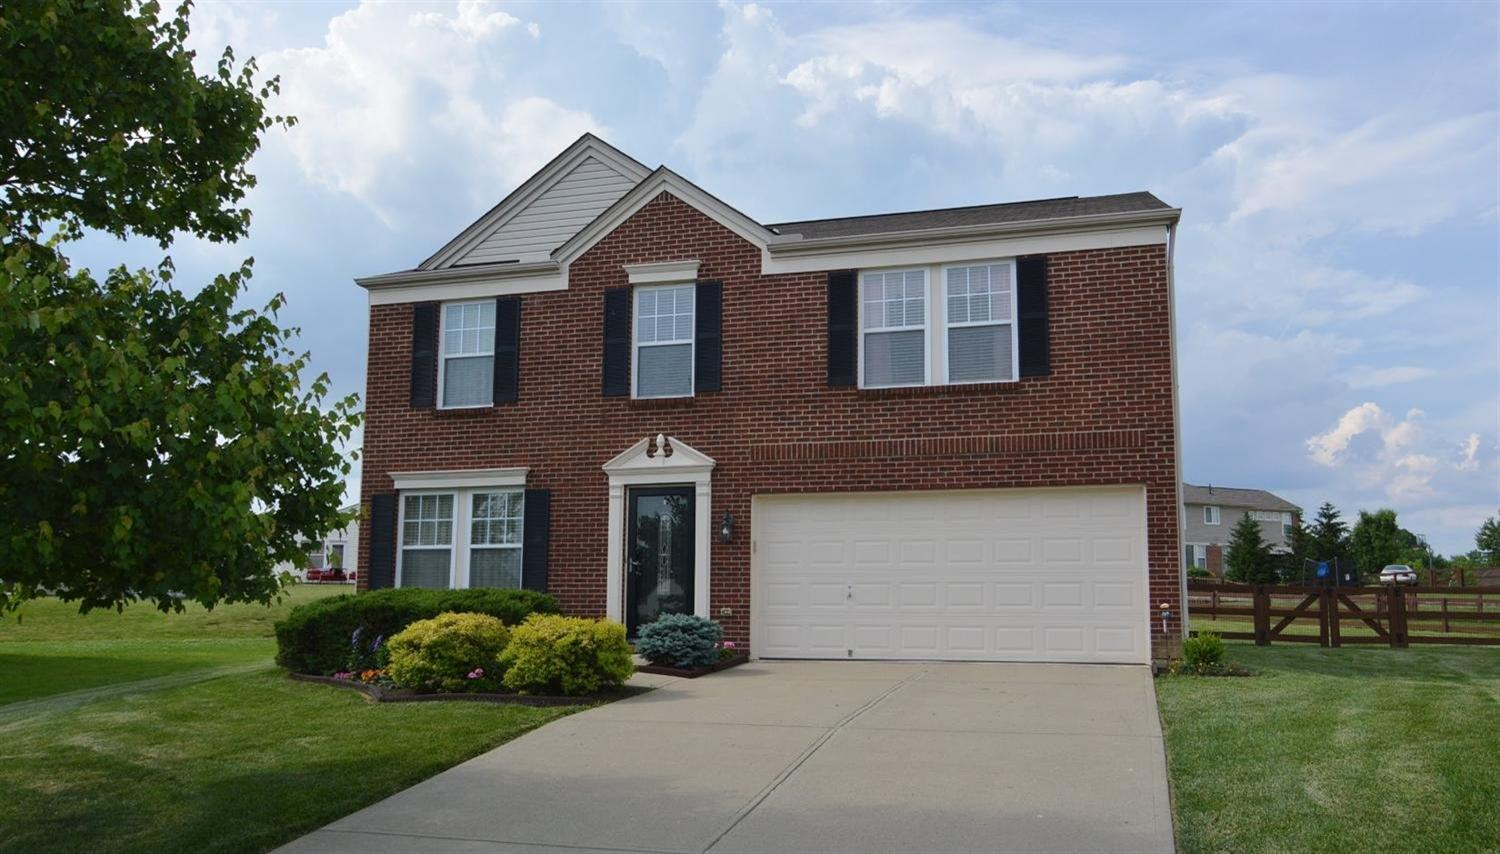 Photo 1 for 1374 Liveoak Ct Independence, KY 41051